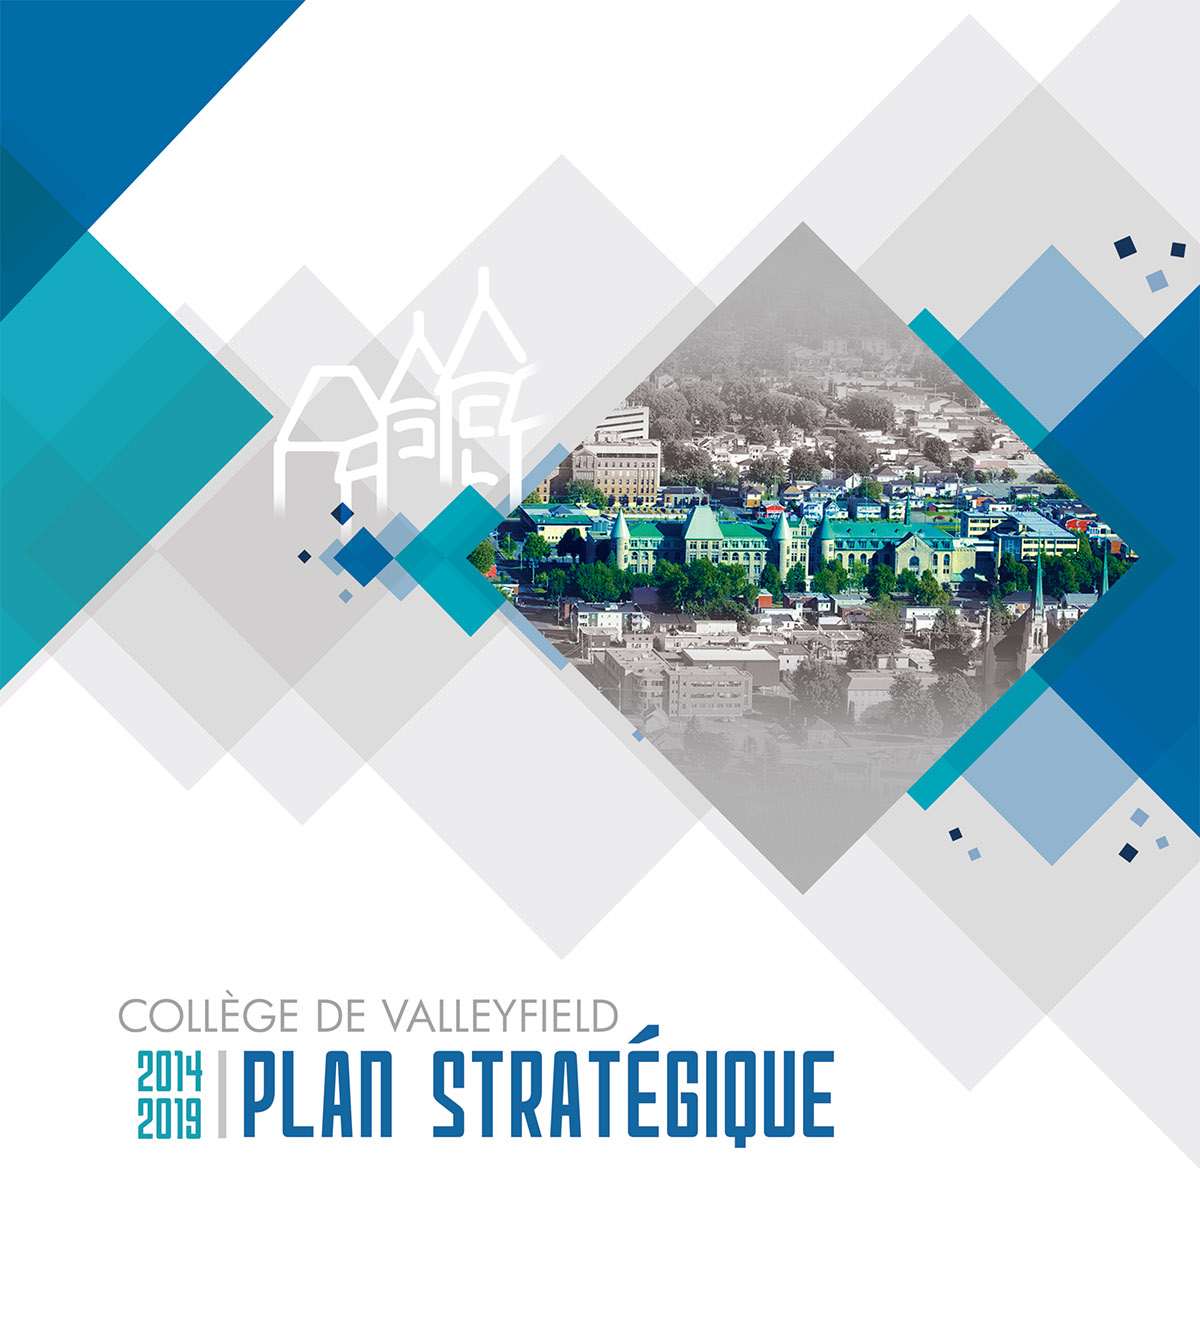 PlanStrat2014-2019 cover